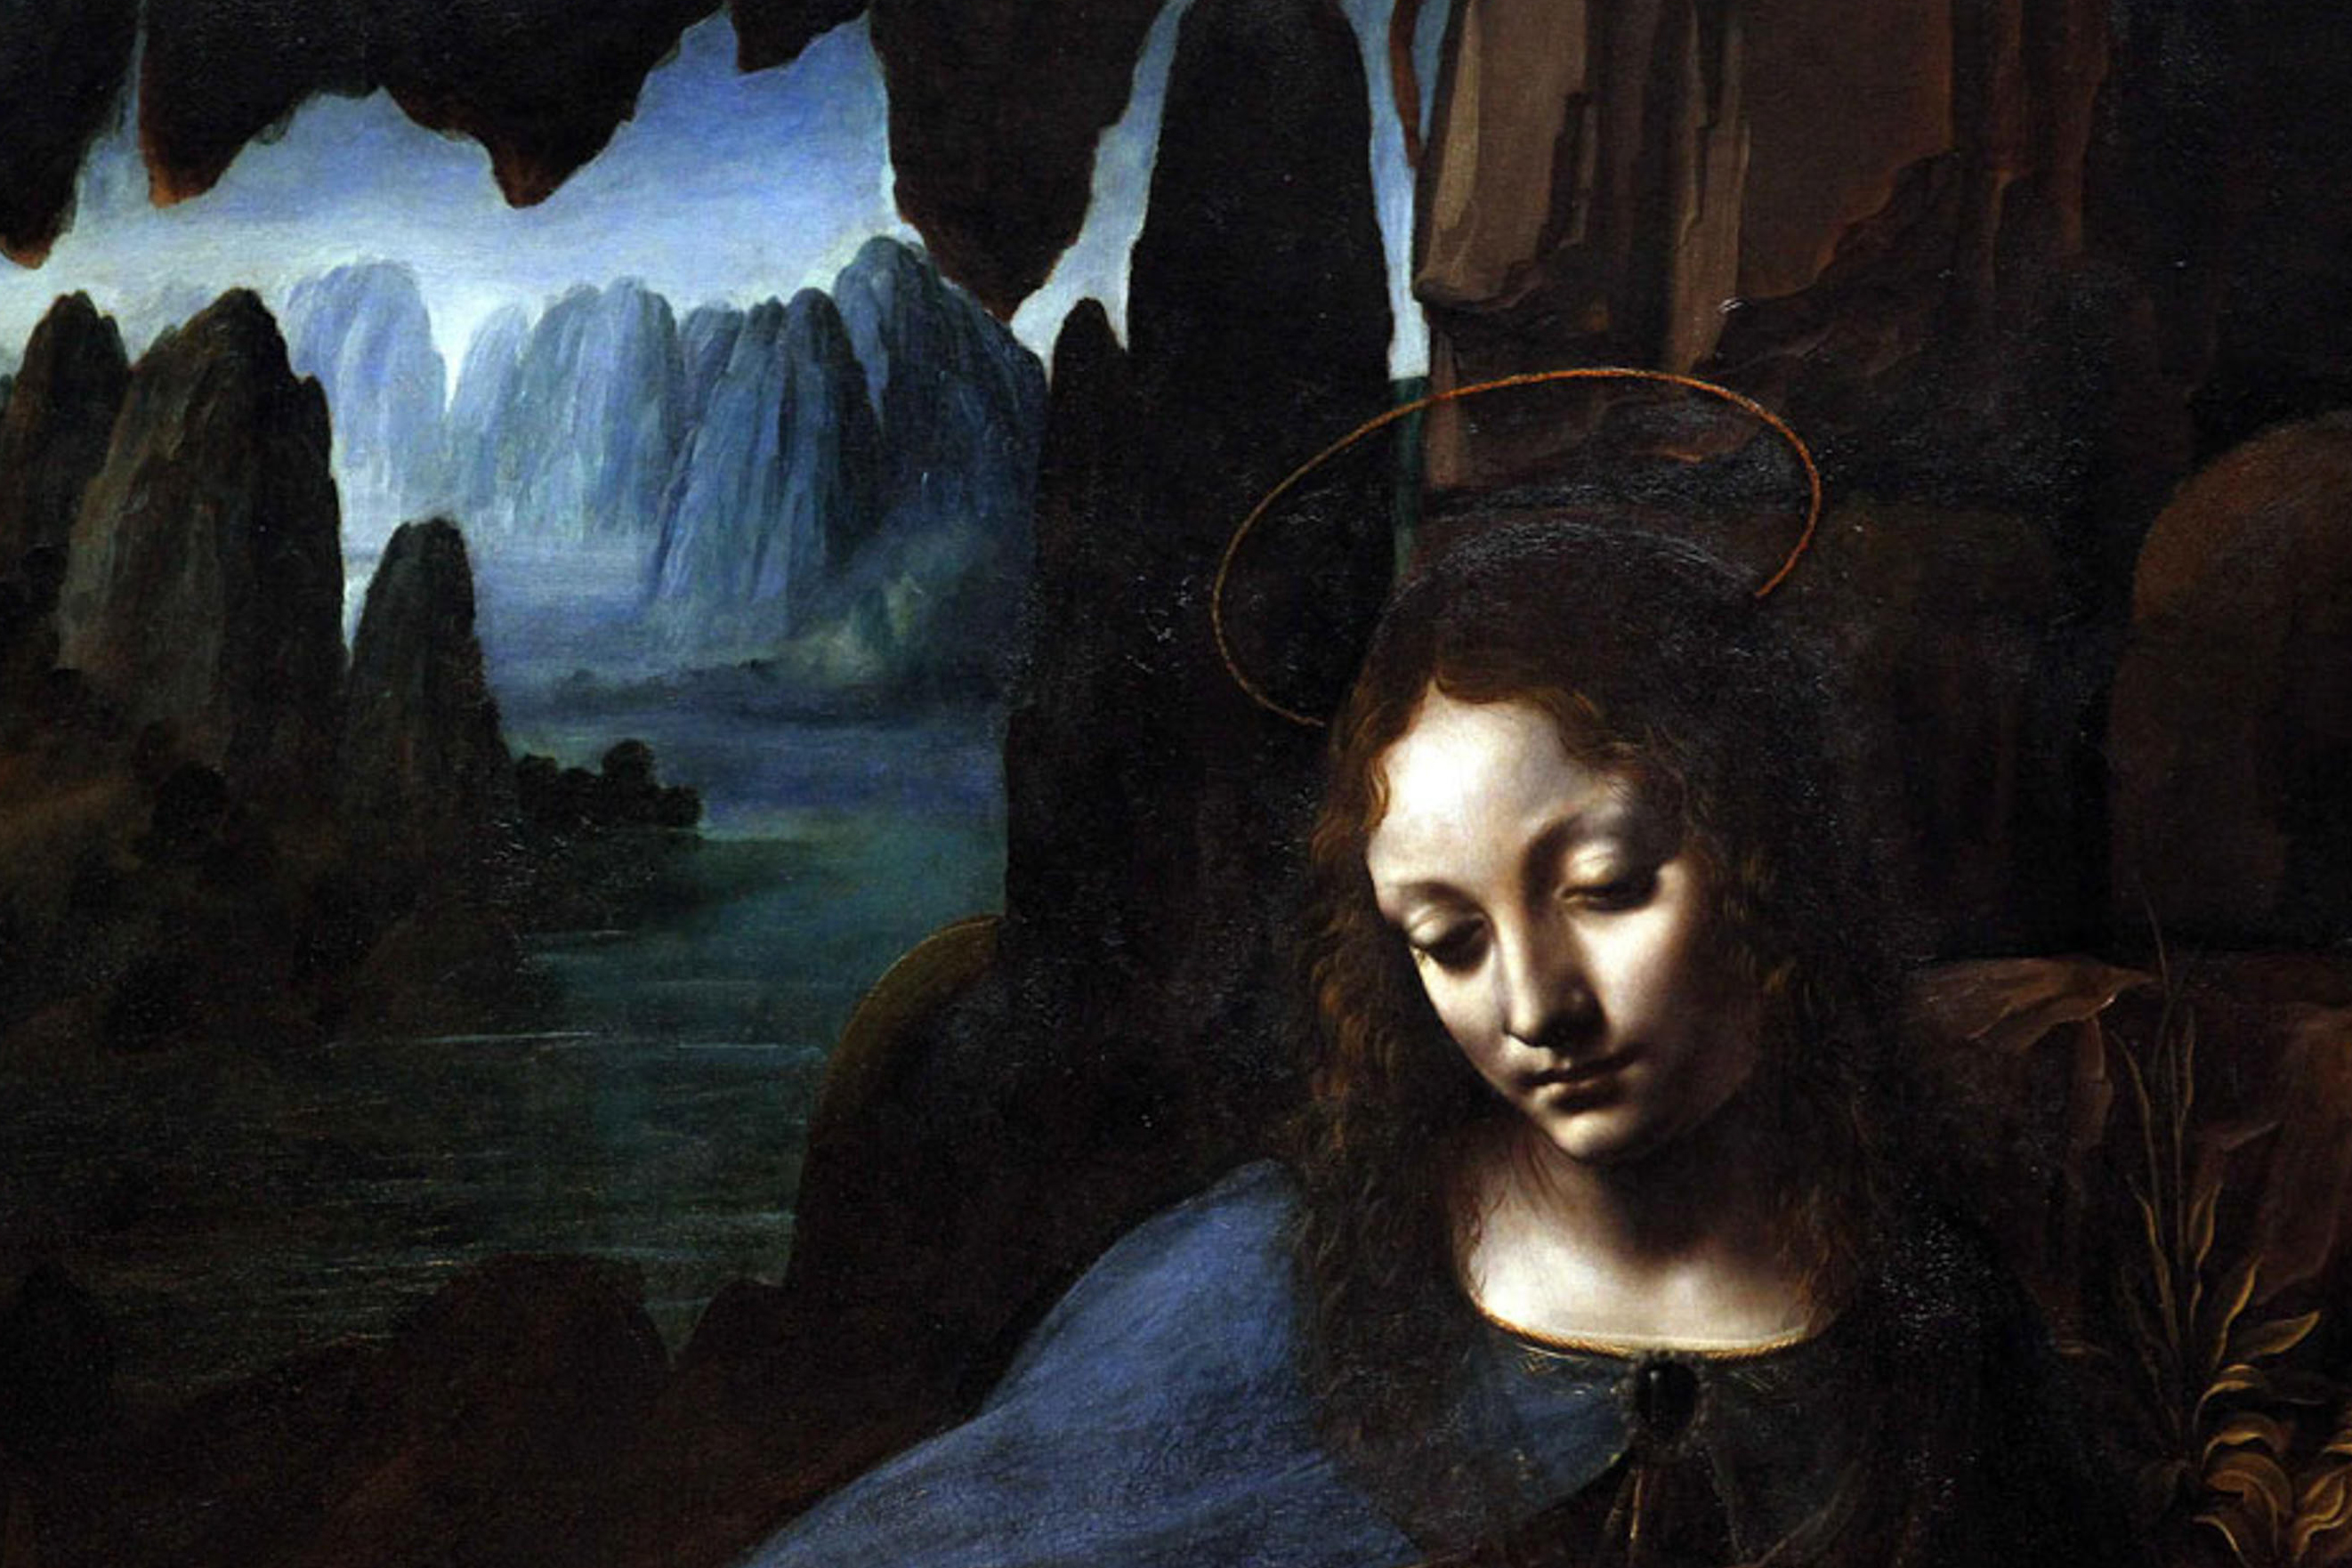 . English: detail of The Virgin of the Rocks by Leonardo da Vinci), at the National Gallery in London after 2010 conservation Virgin of the Rocks. between 1491 and 1508. 'The Virgin on the Rocks' by Leonardo da Vinci (1491-1508), at the National Gallery